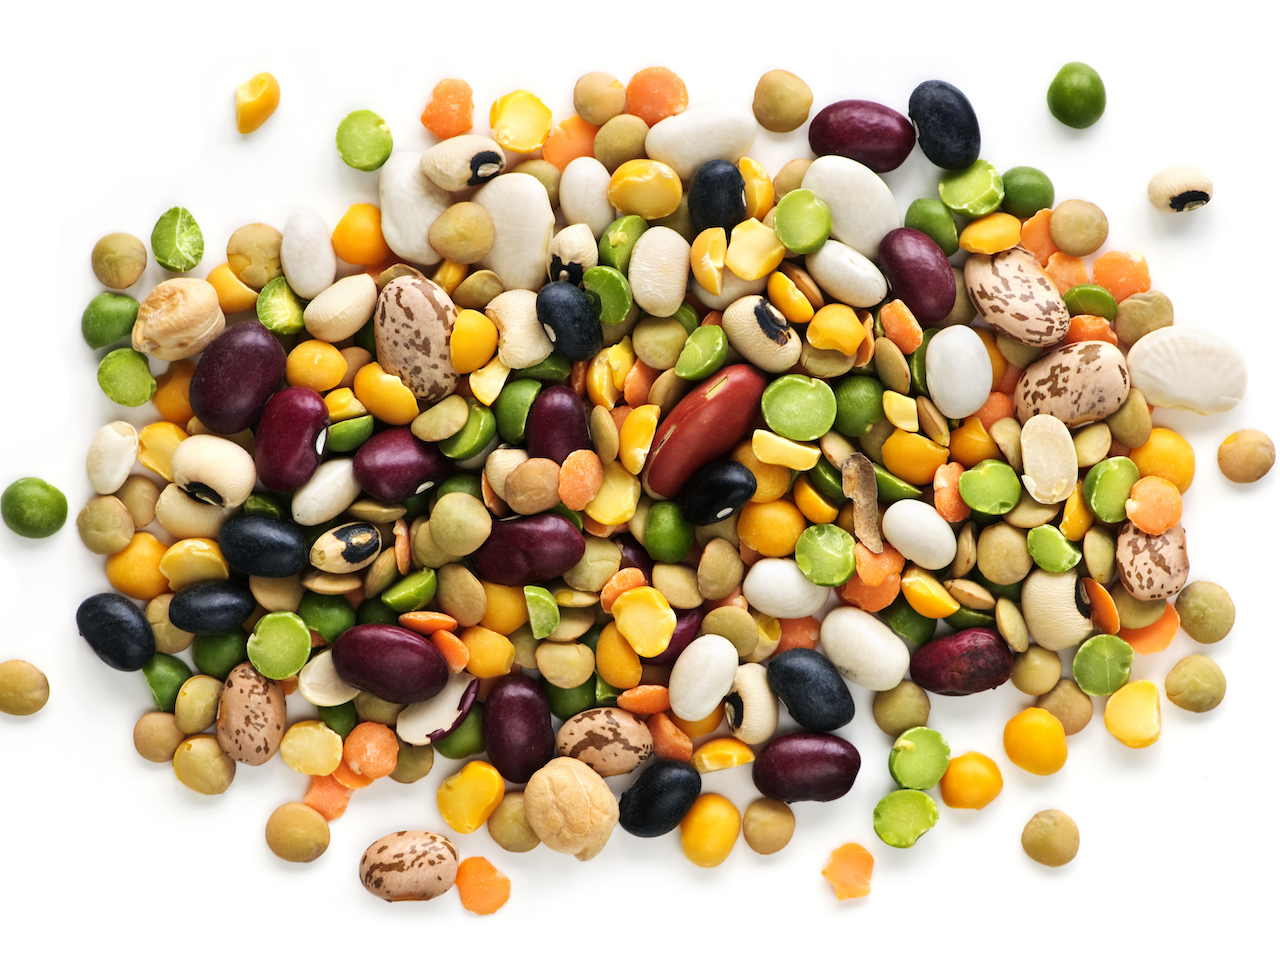 How to cook dried beans: colourful pile of dried beans